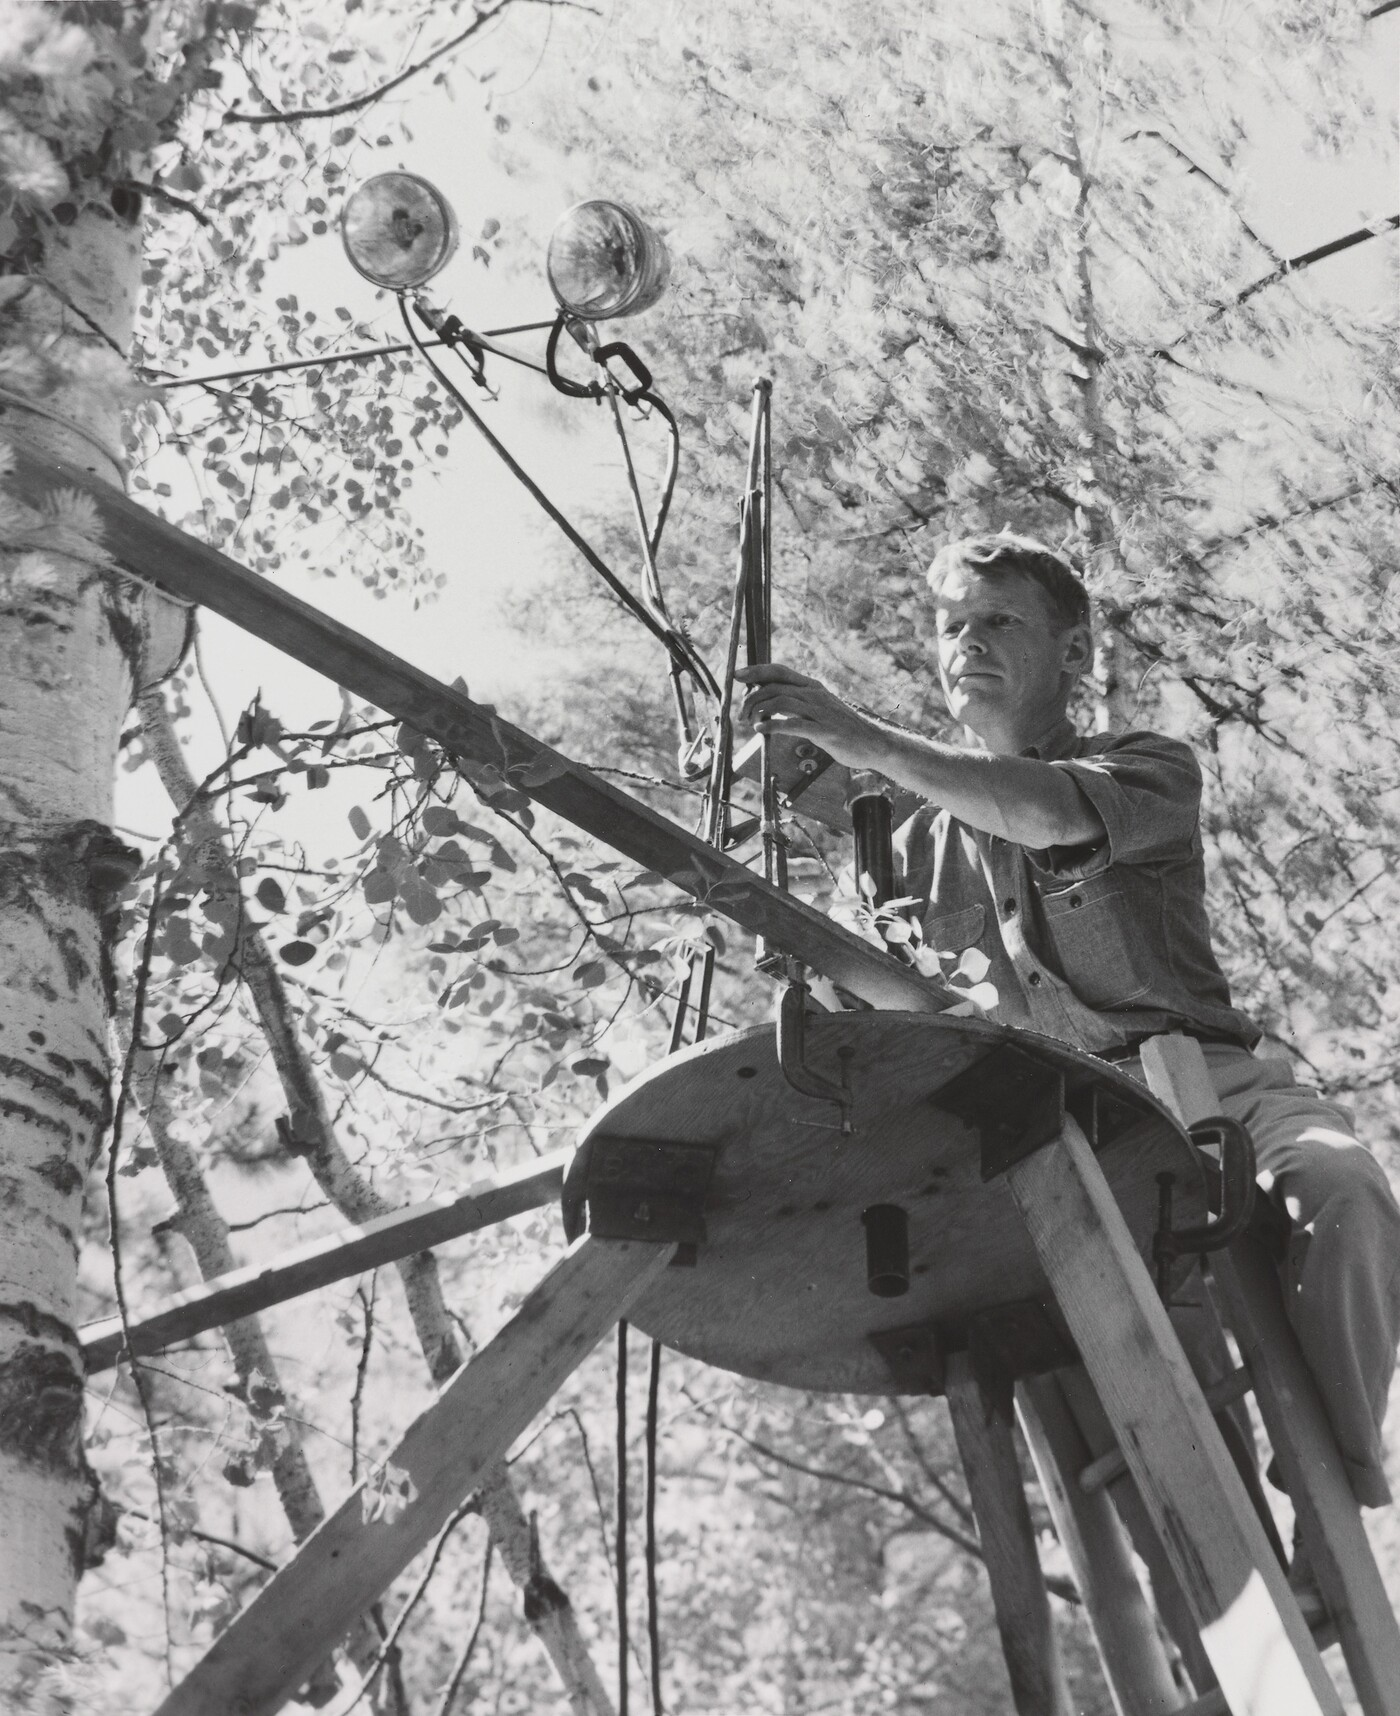 Laura Gilpin (1891–1979), Eliot Porter Setting Up Equipment for Photographing a Lewis' Woodpecker, New Mexico, 1952